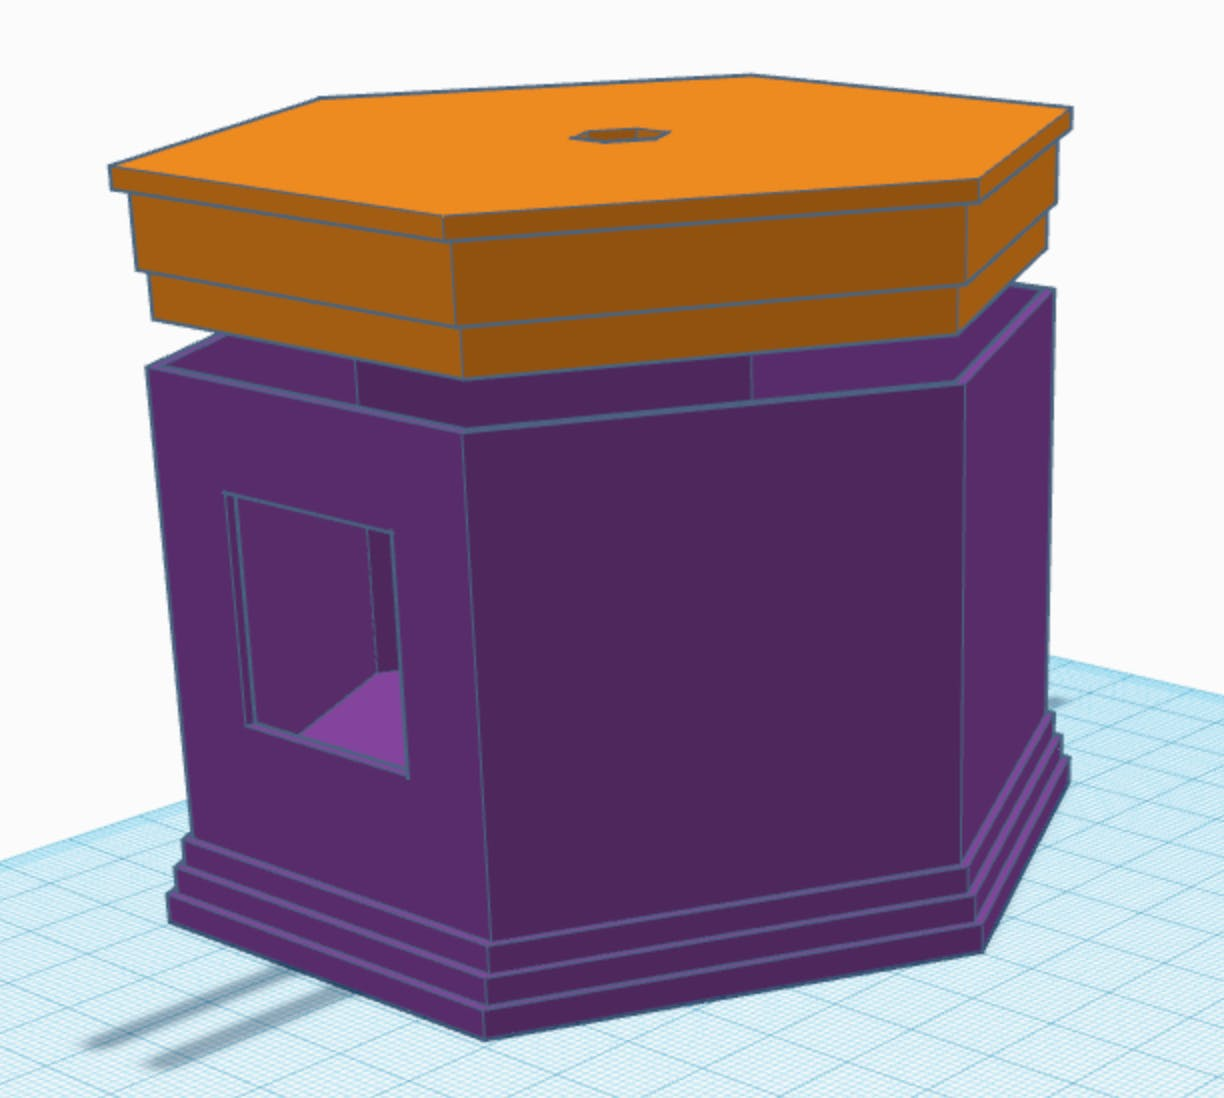 TinkerCAD Screenshot of the circuitry box